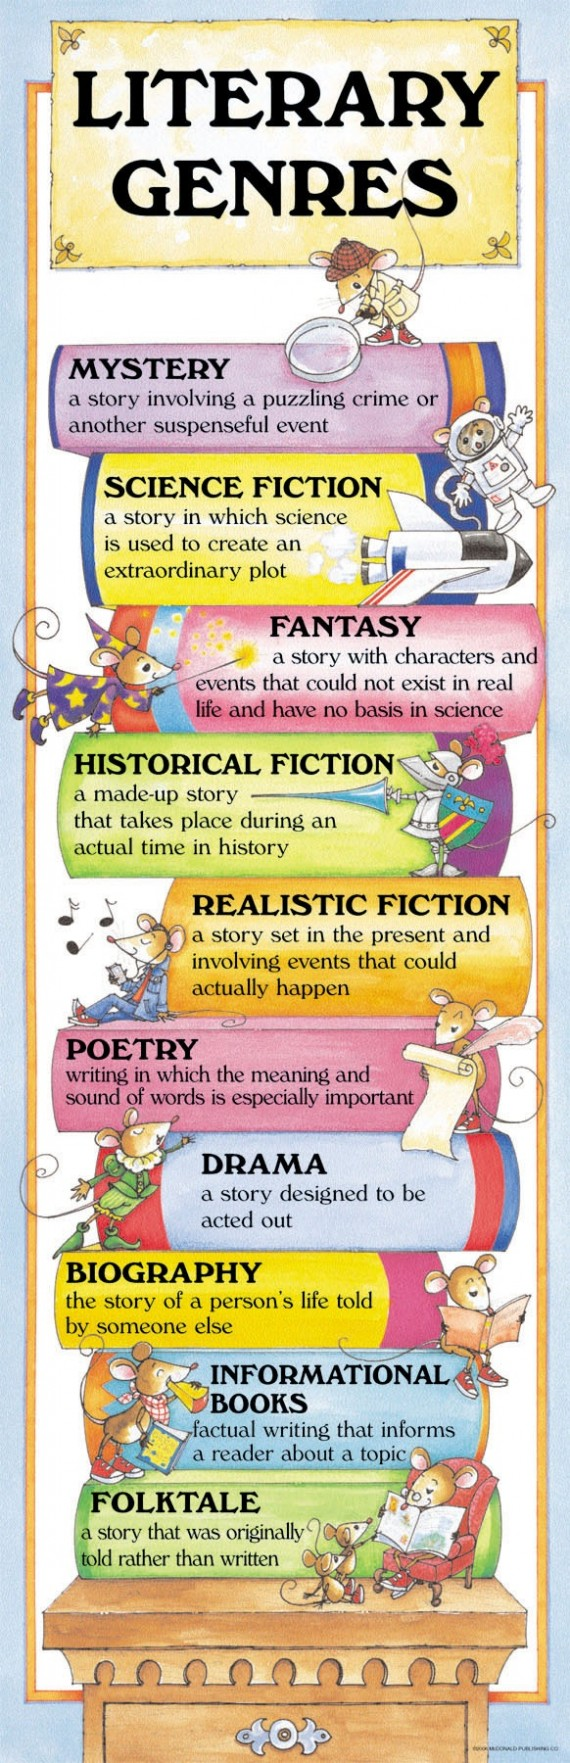 different genres of literature with examples